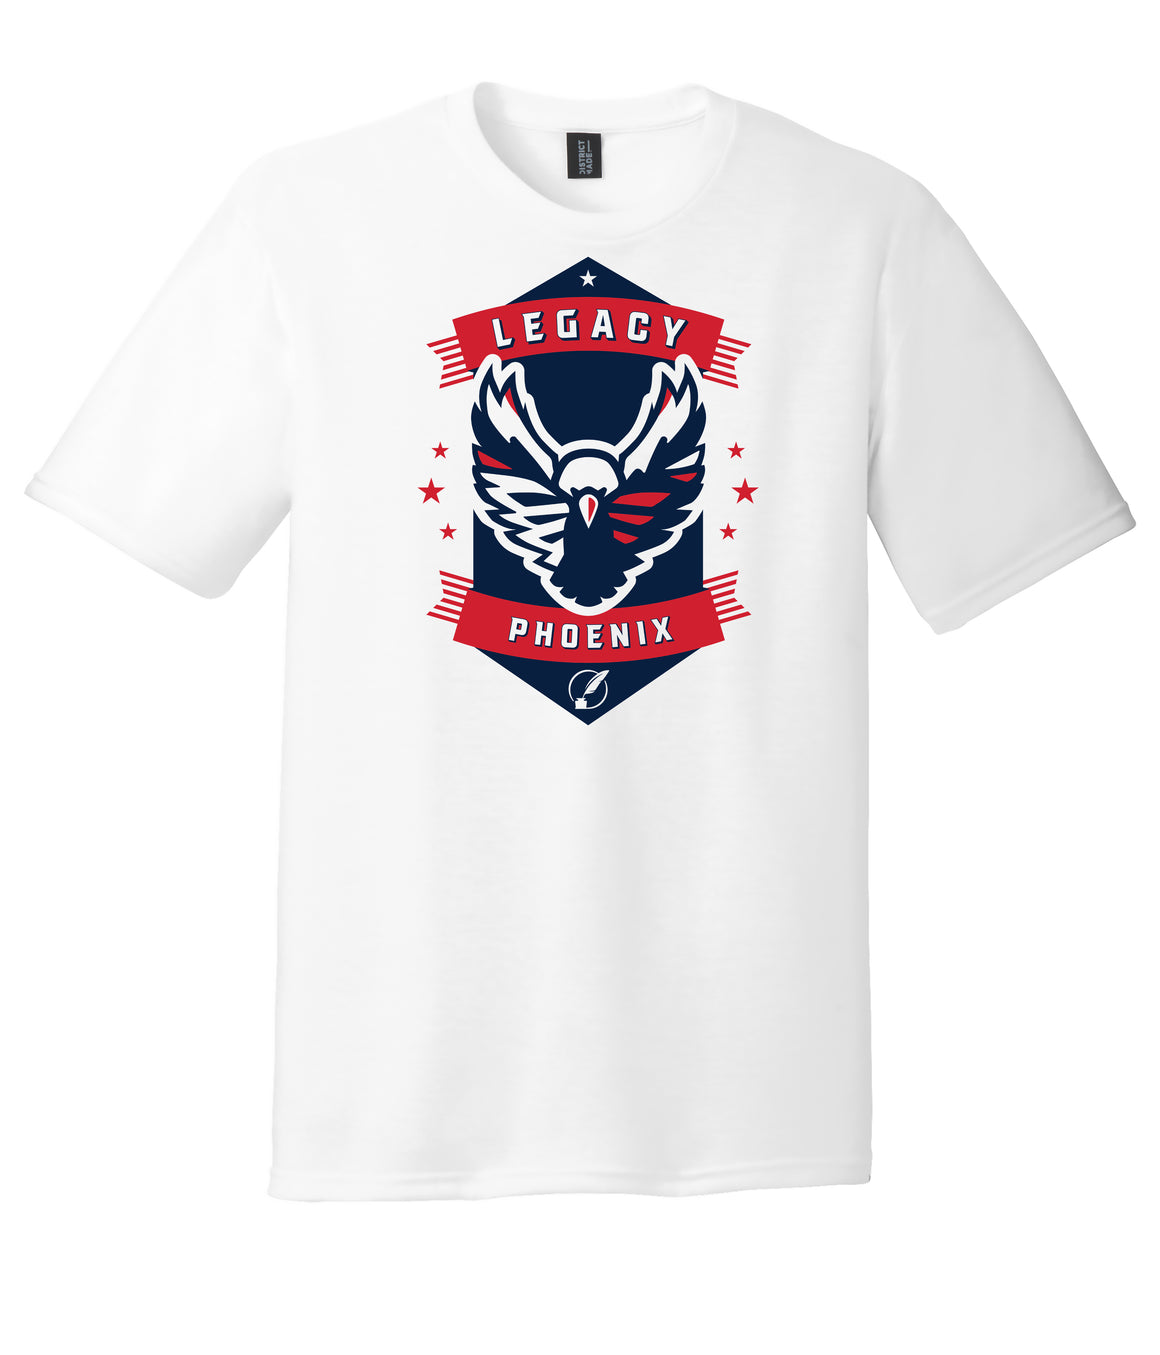 Legacy Traditional School Phoenix - White Spirit Day Shirt w/Mascot